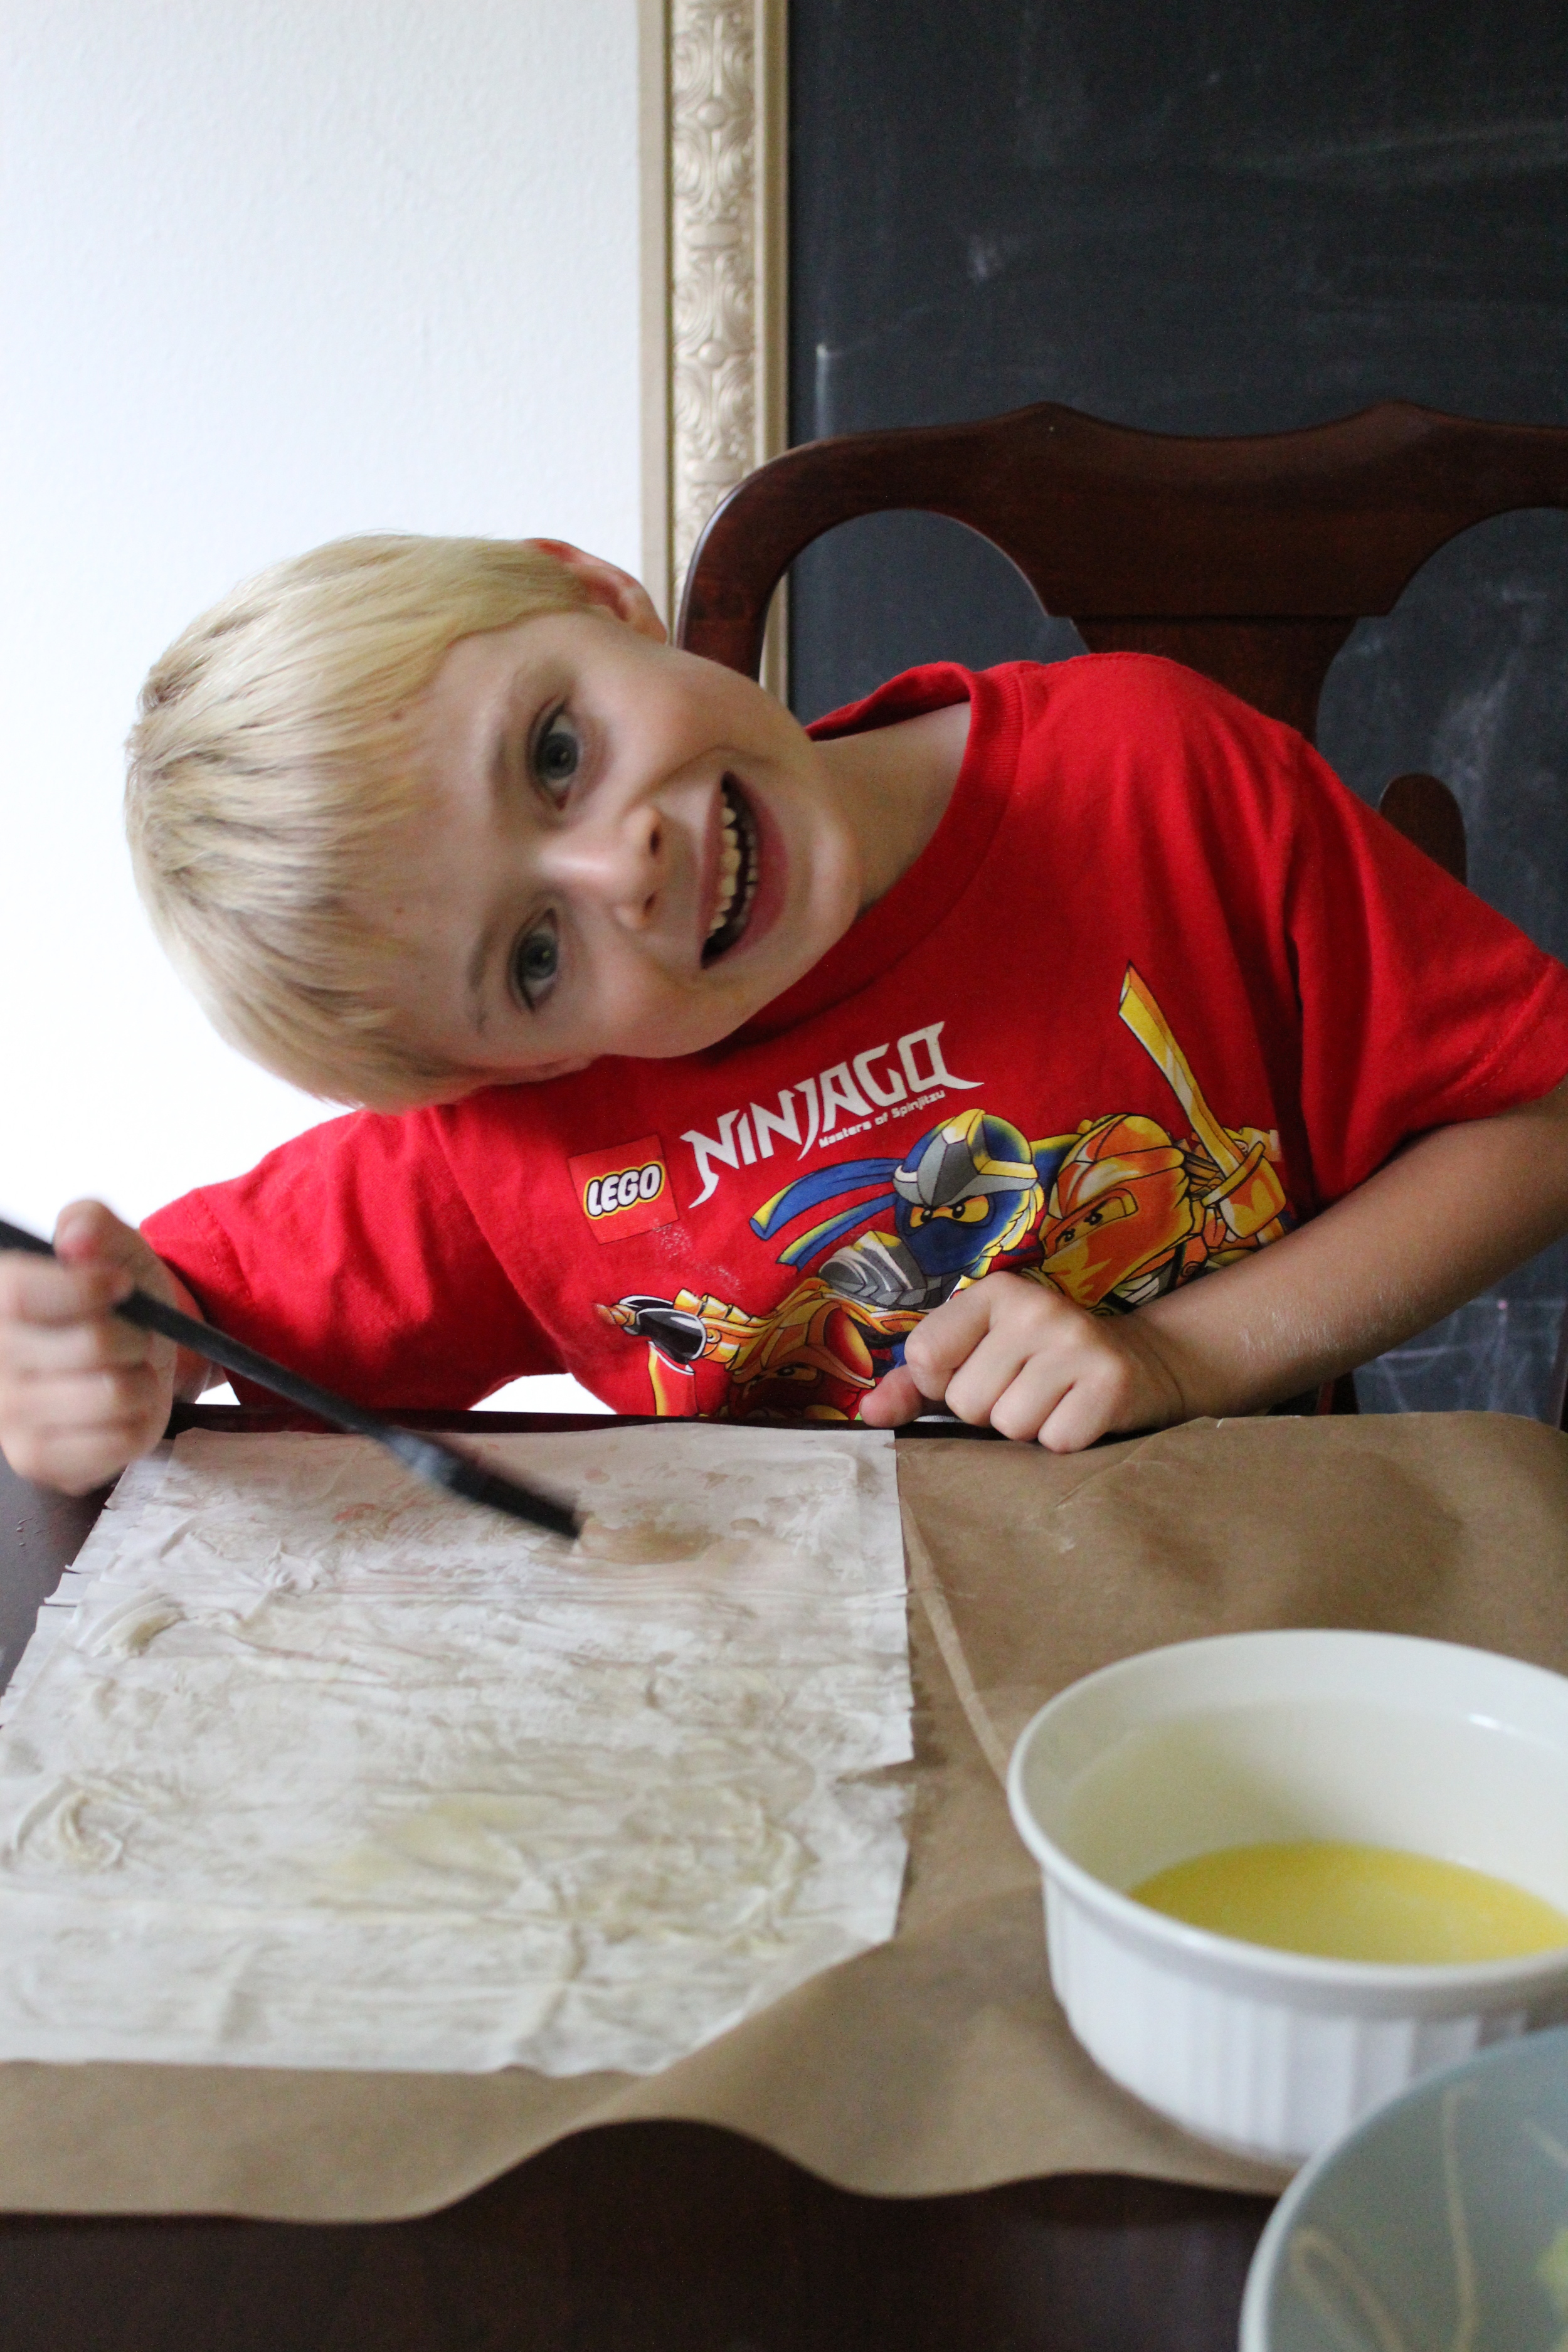 My oldest has lately been extra silly whenever the camera comes out. Here he is spreading butter on the dough.